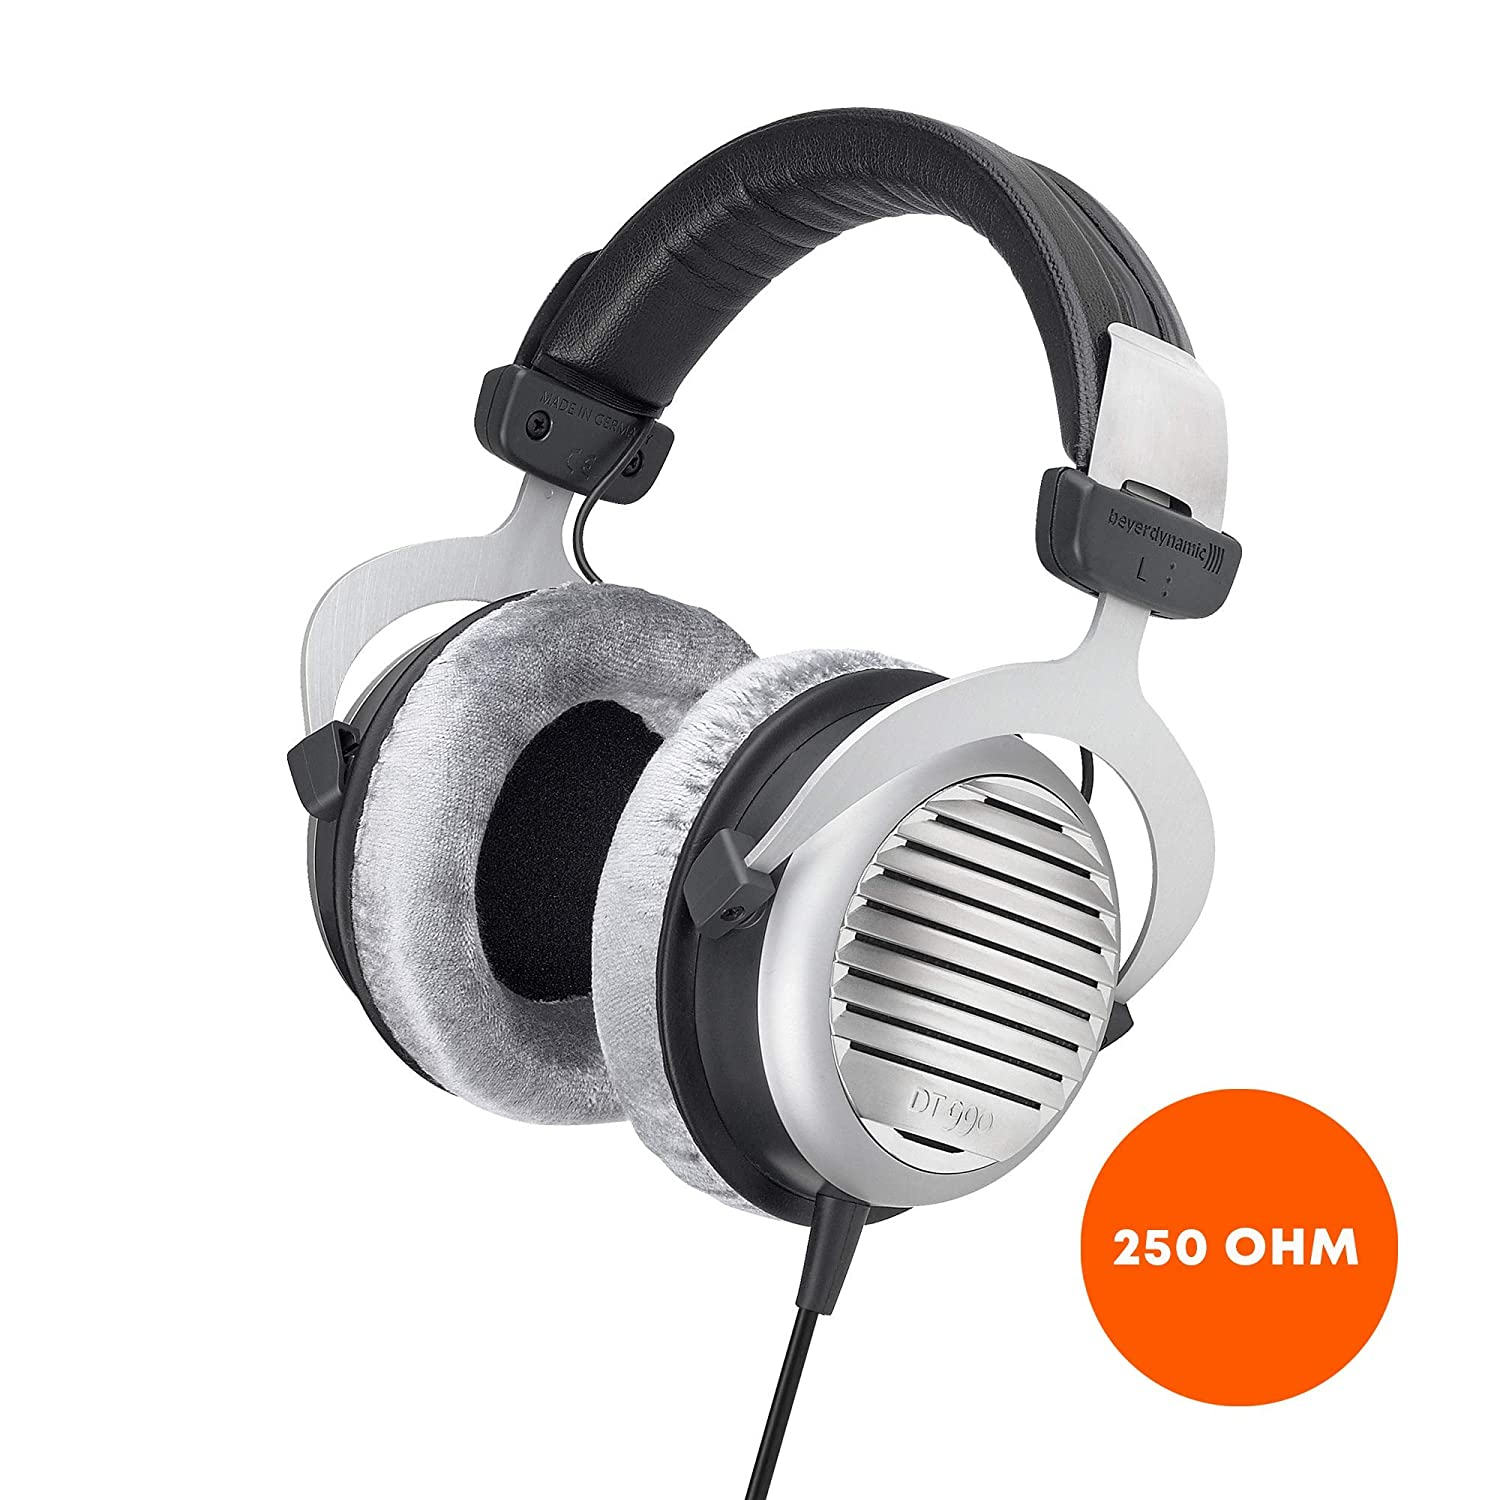 High End Headphones >> Beyerdynamic Dt 990 Premium Edition 250 Ohm Over Ear Stereo Headphones Open Design Wired High End For The Stereo System